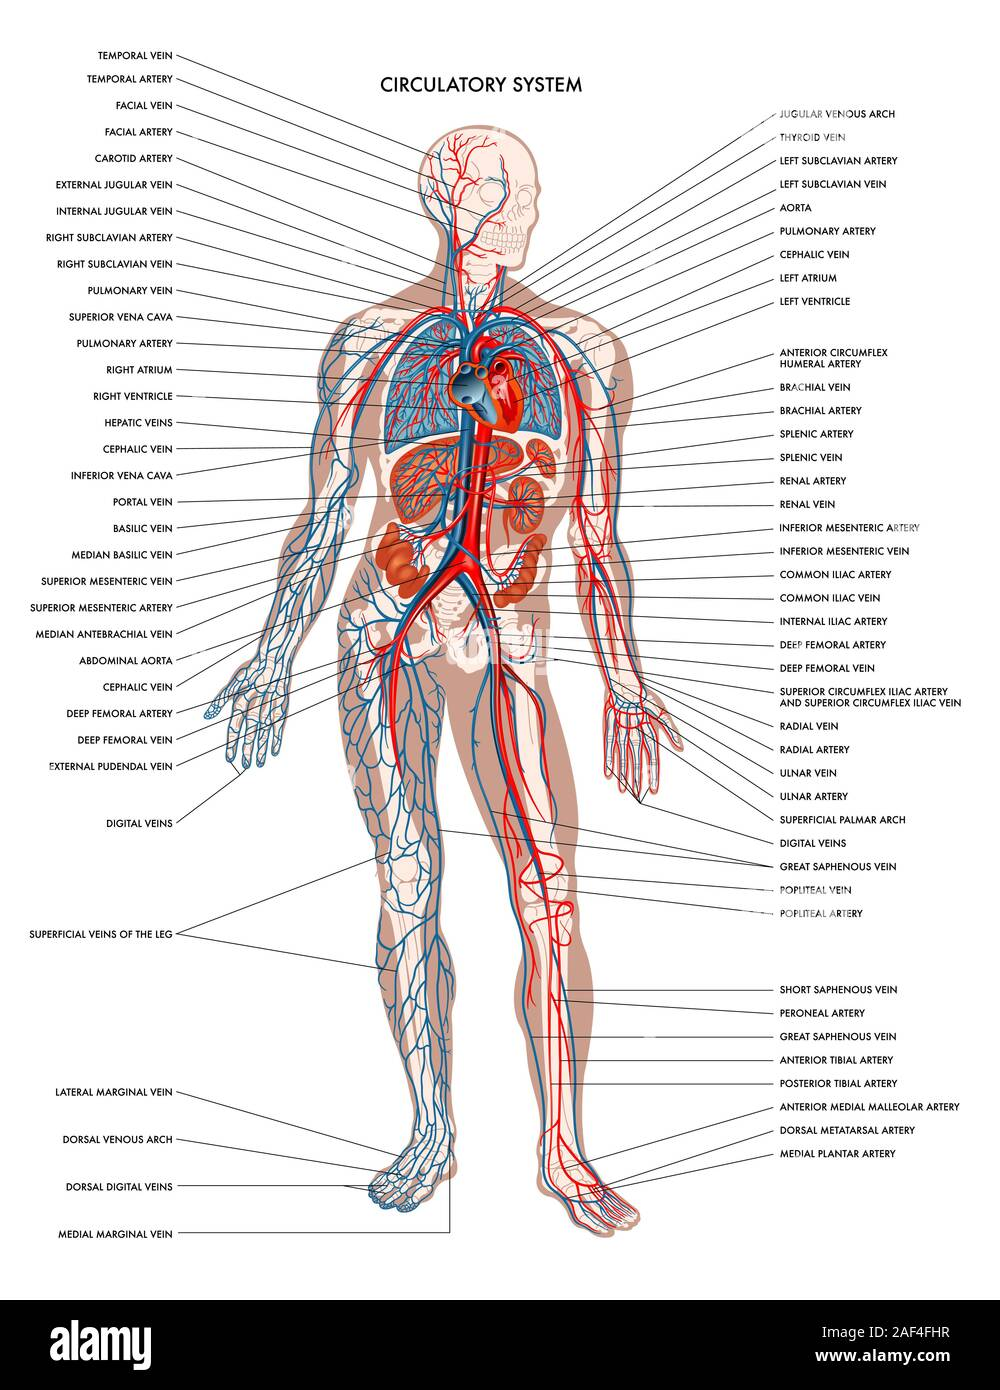 Human Body Organs Diagram High Resolution Stock Photography And Images Alamy